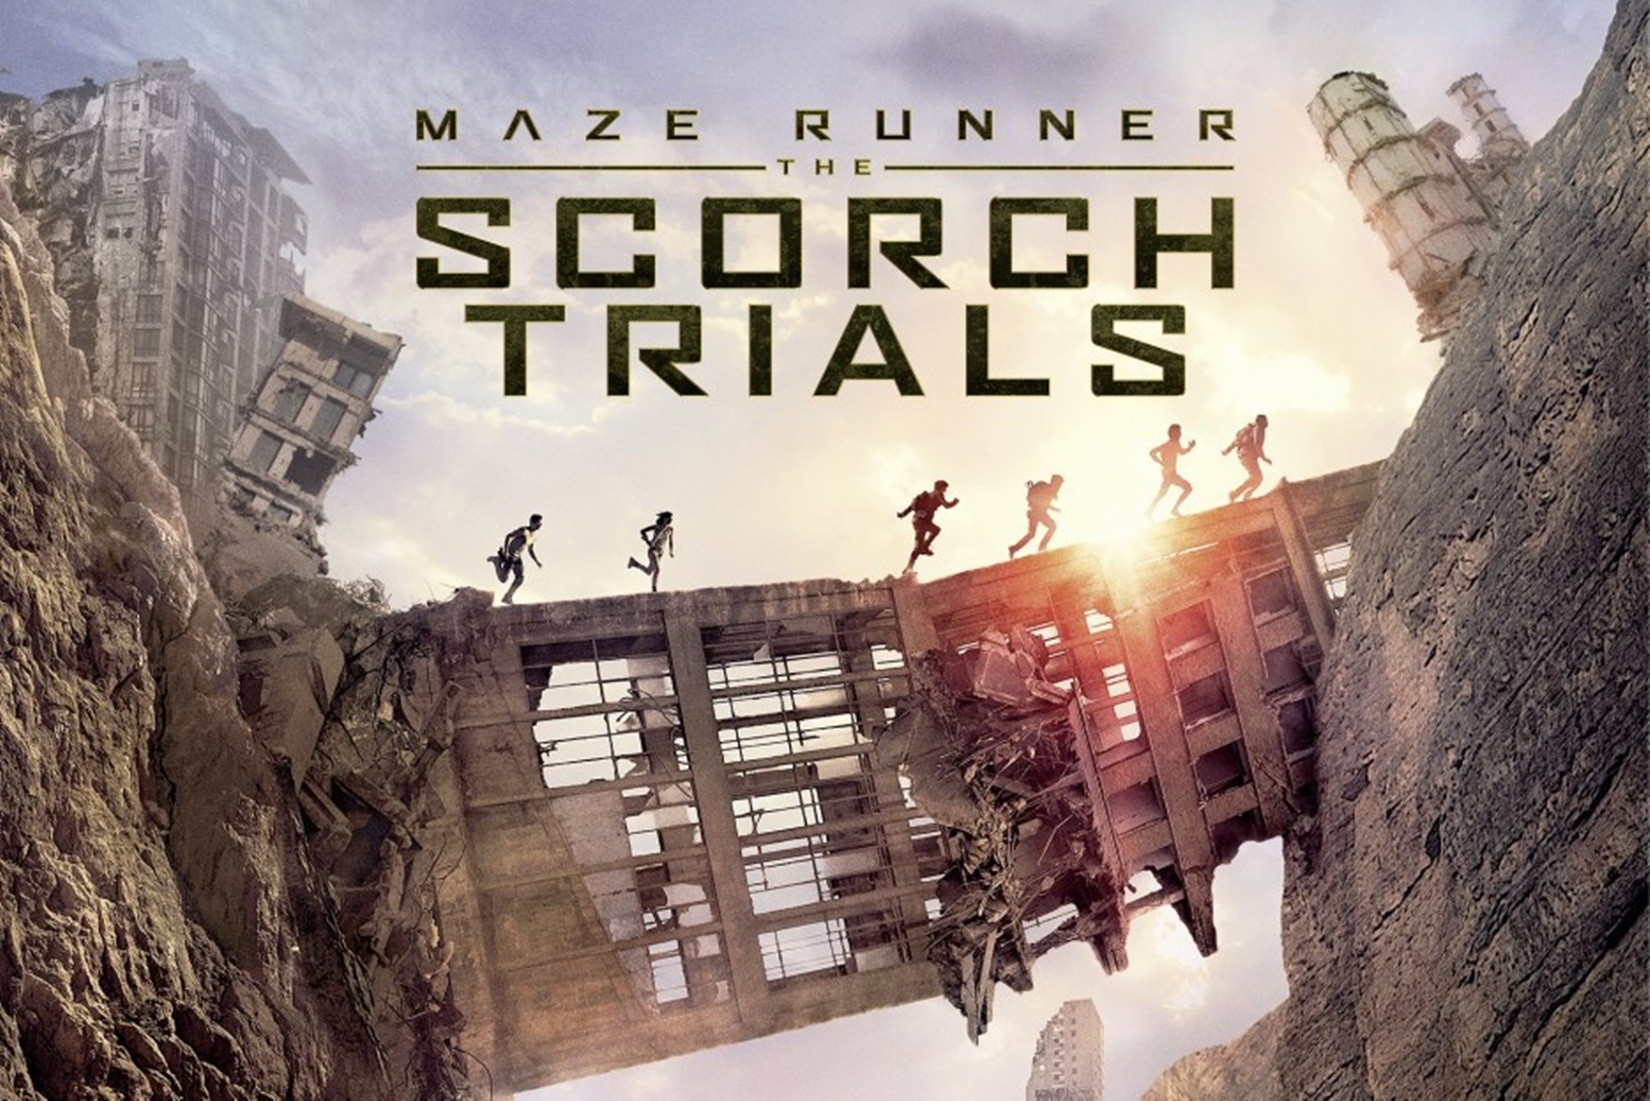 Student's Review: 'The Scorch Trials' by Sònia Vallès